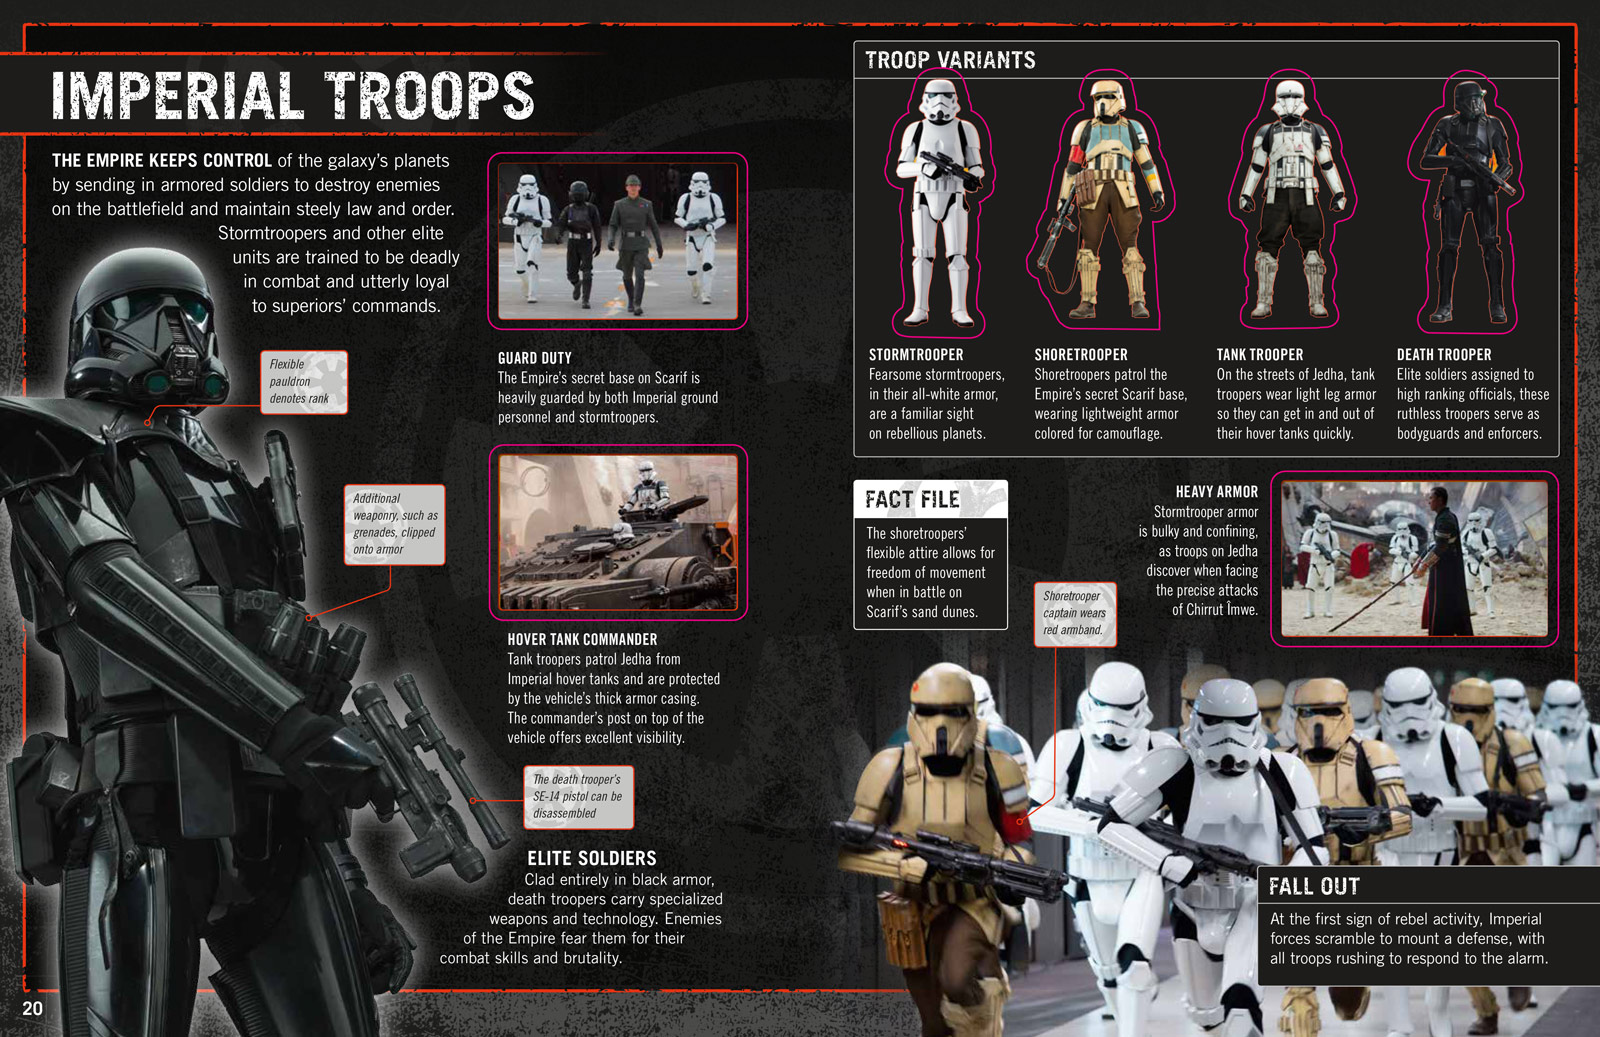 rogue one ultimate sticker encyclopedia combines the fun